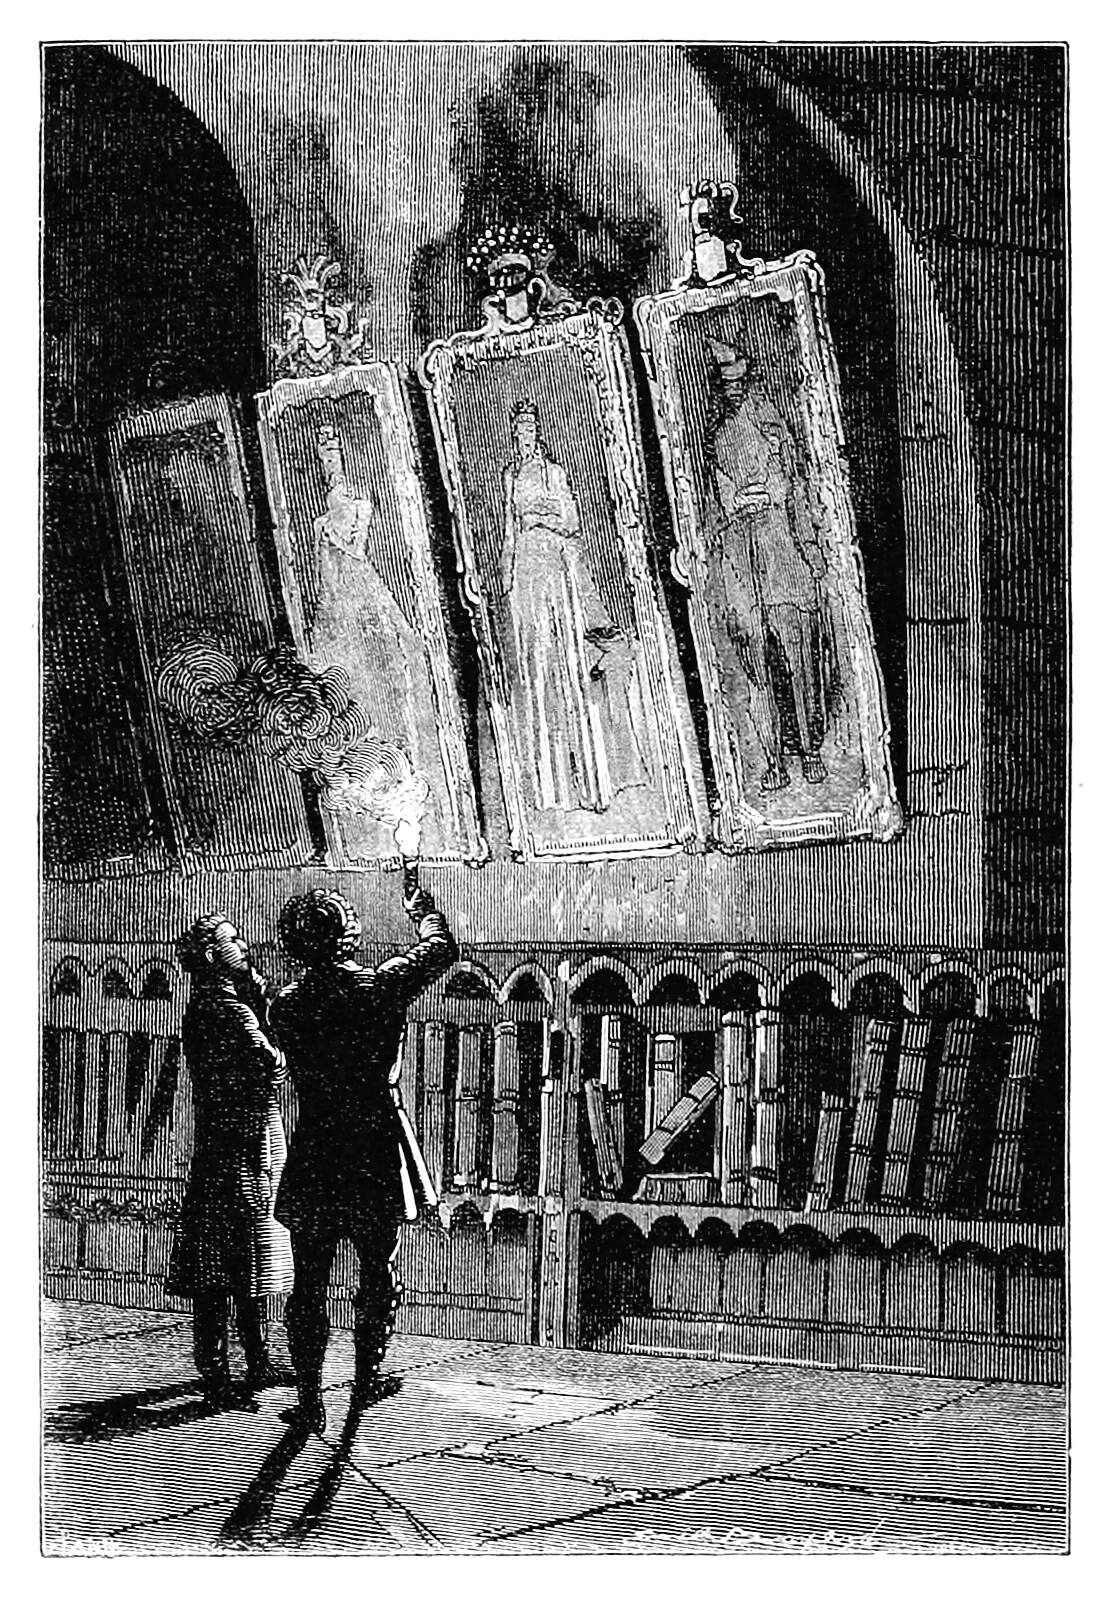 Two people inspect painting by torchlight